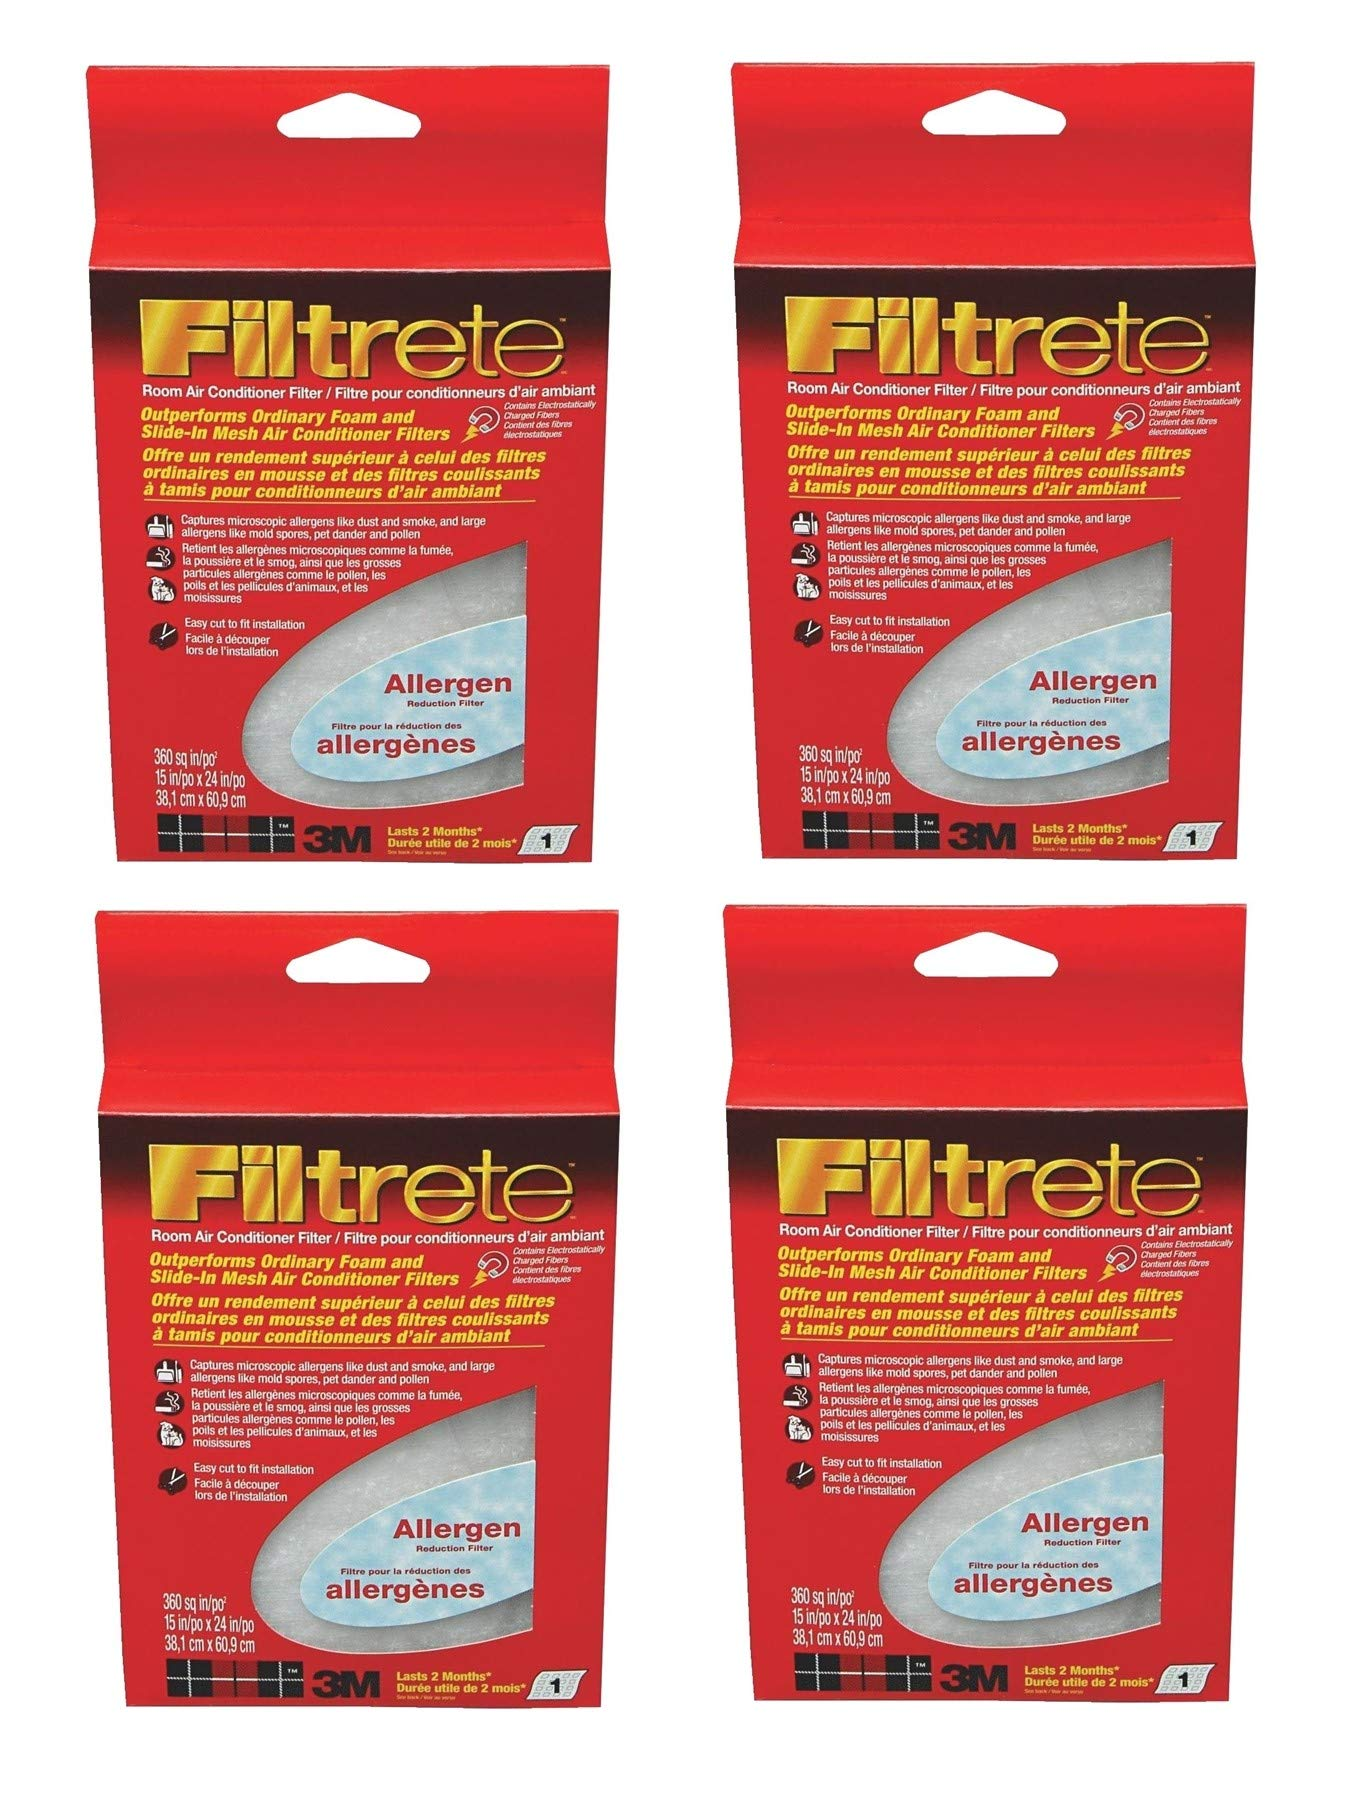 Filtrete 3M Air Conditioner Filter, 15-Inch by 24-Inch (9808), 4 Pack by Filtrete